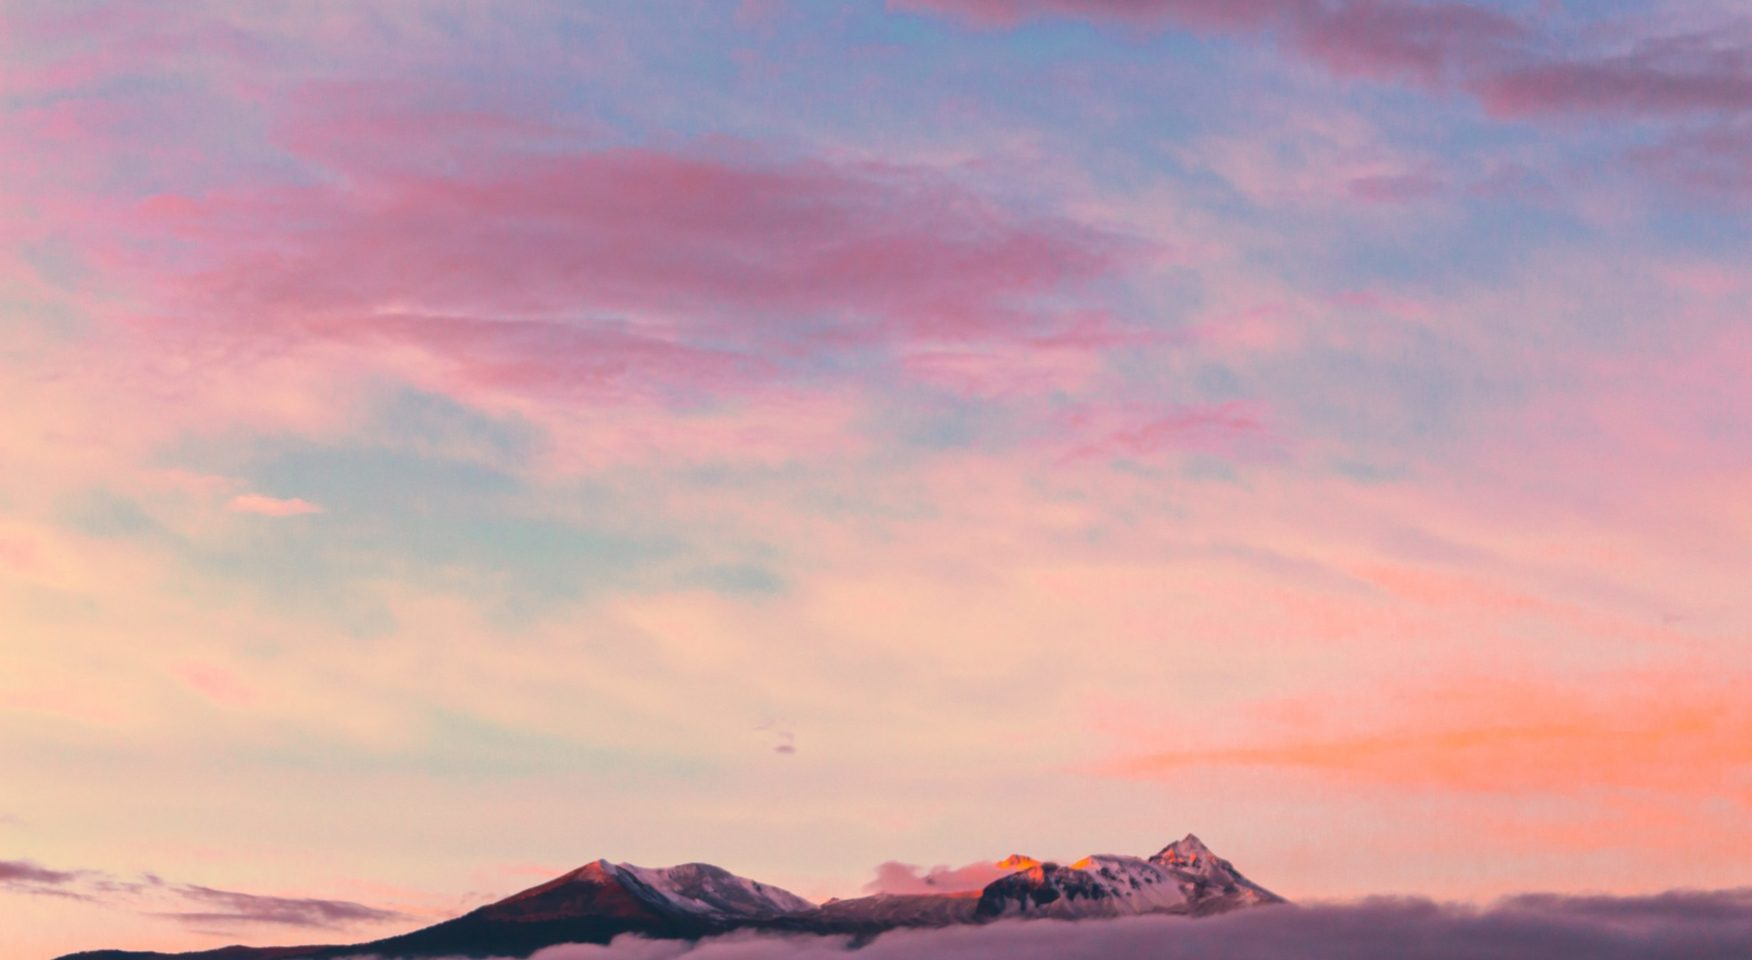 Pastel multi-colored sky above the tops of rocky mountains